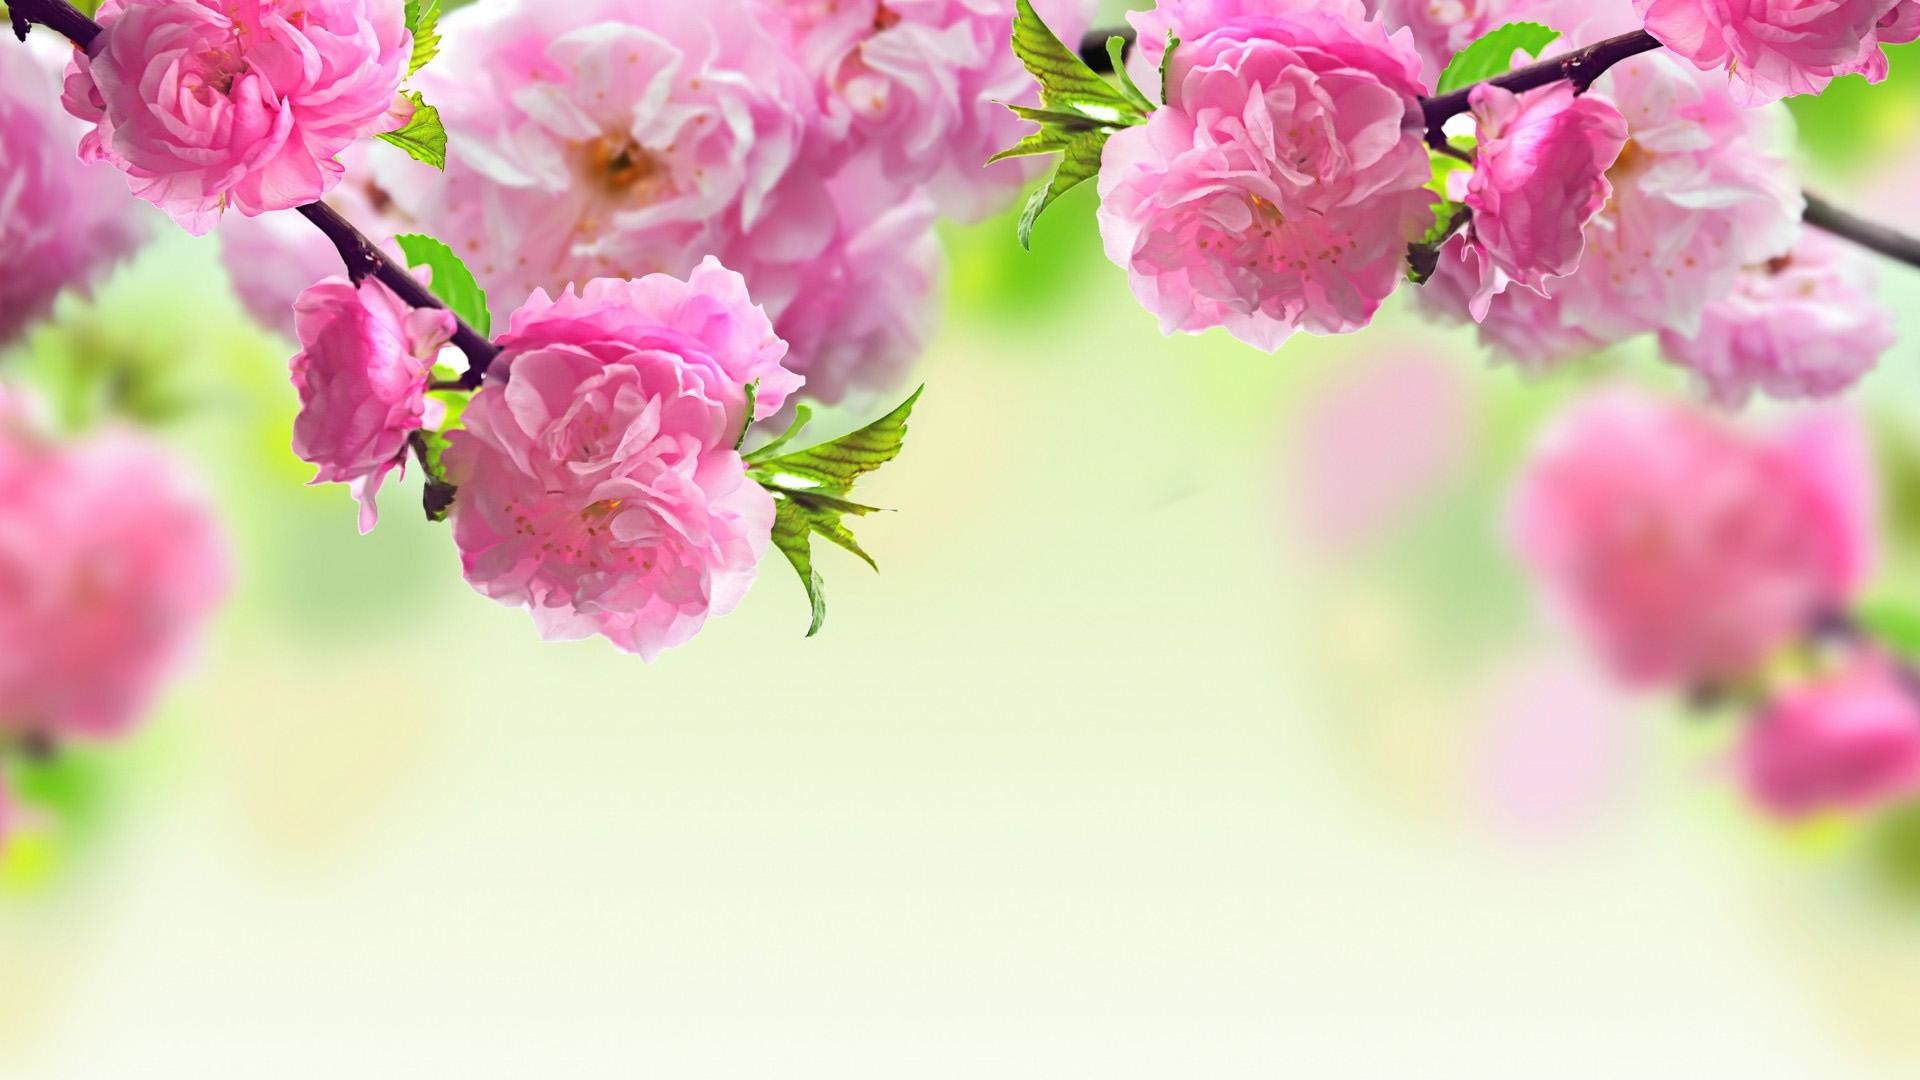 … Wallpapers Spring   HD Wallpapers Backgrounds of Your Choice